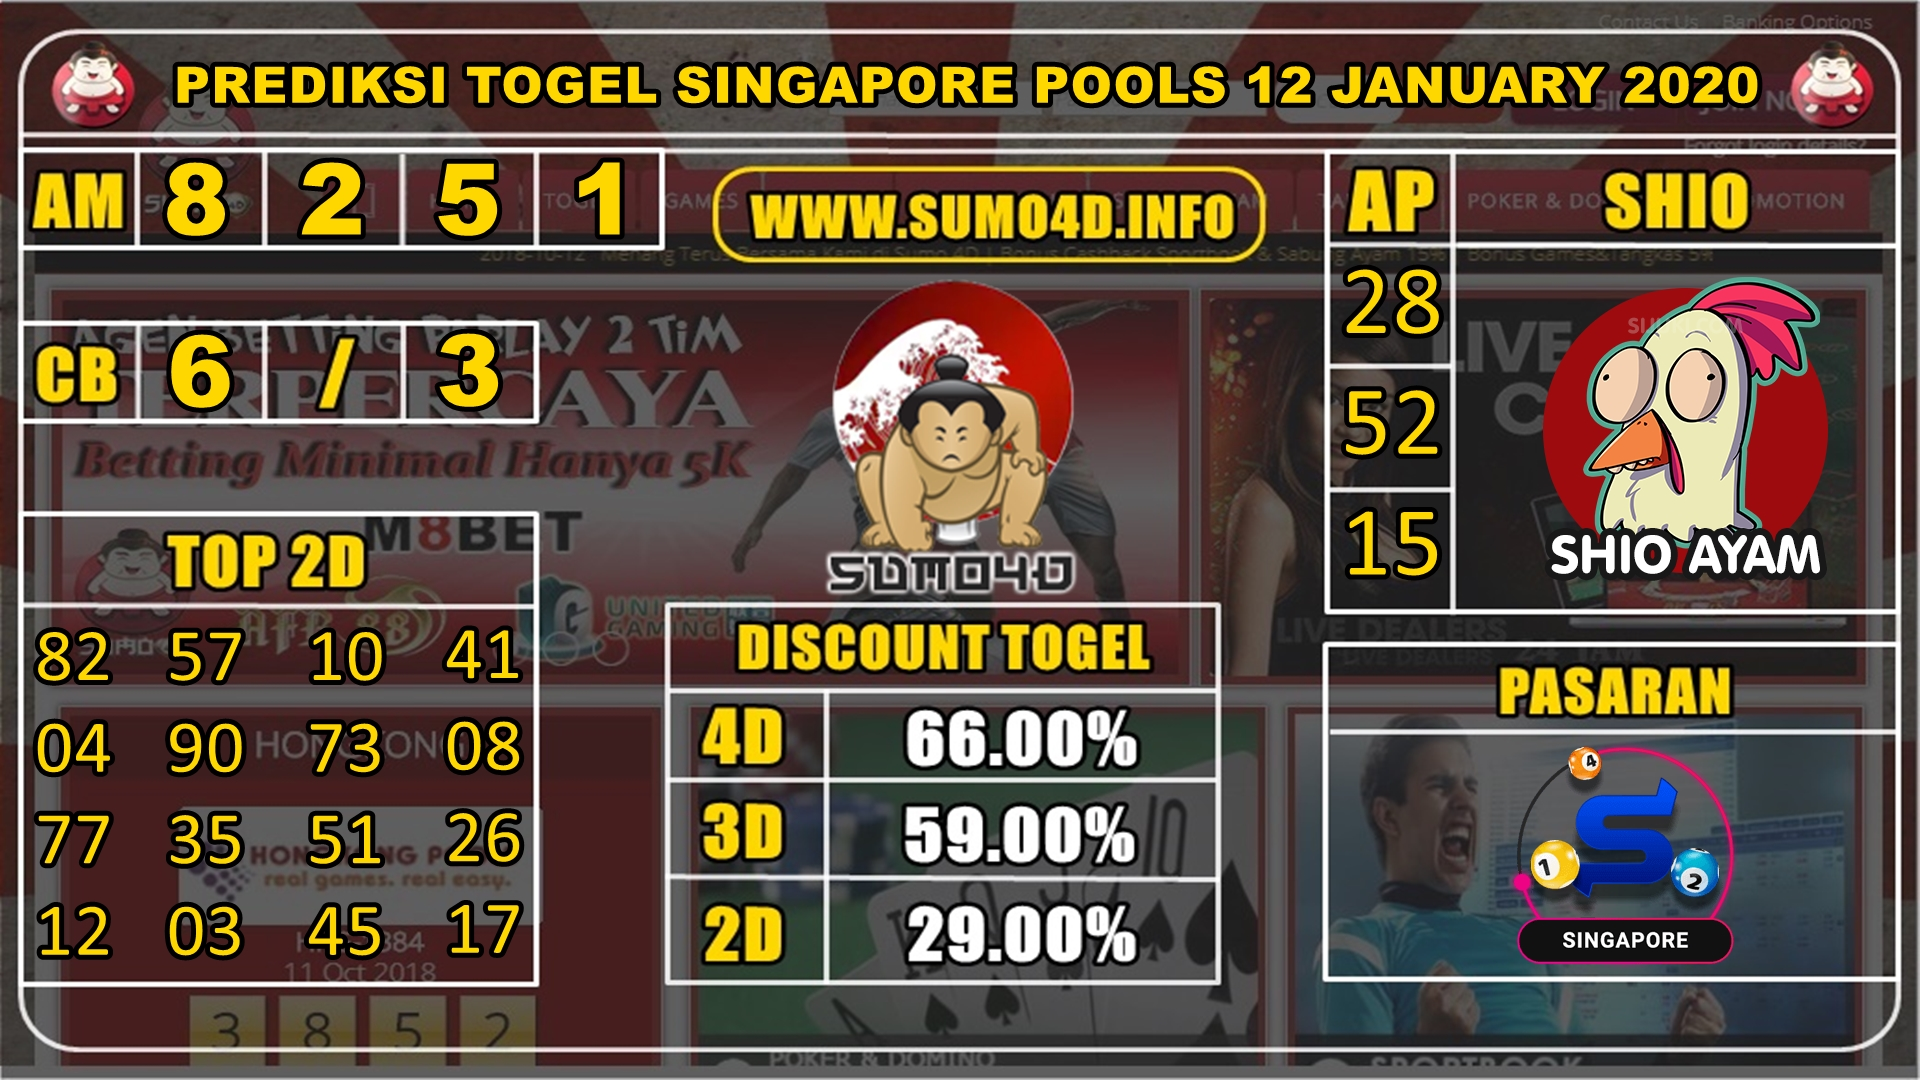 PREDIKSI TOGEL SINGAPORE POOLS 12 JANUARY 2020